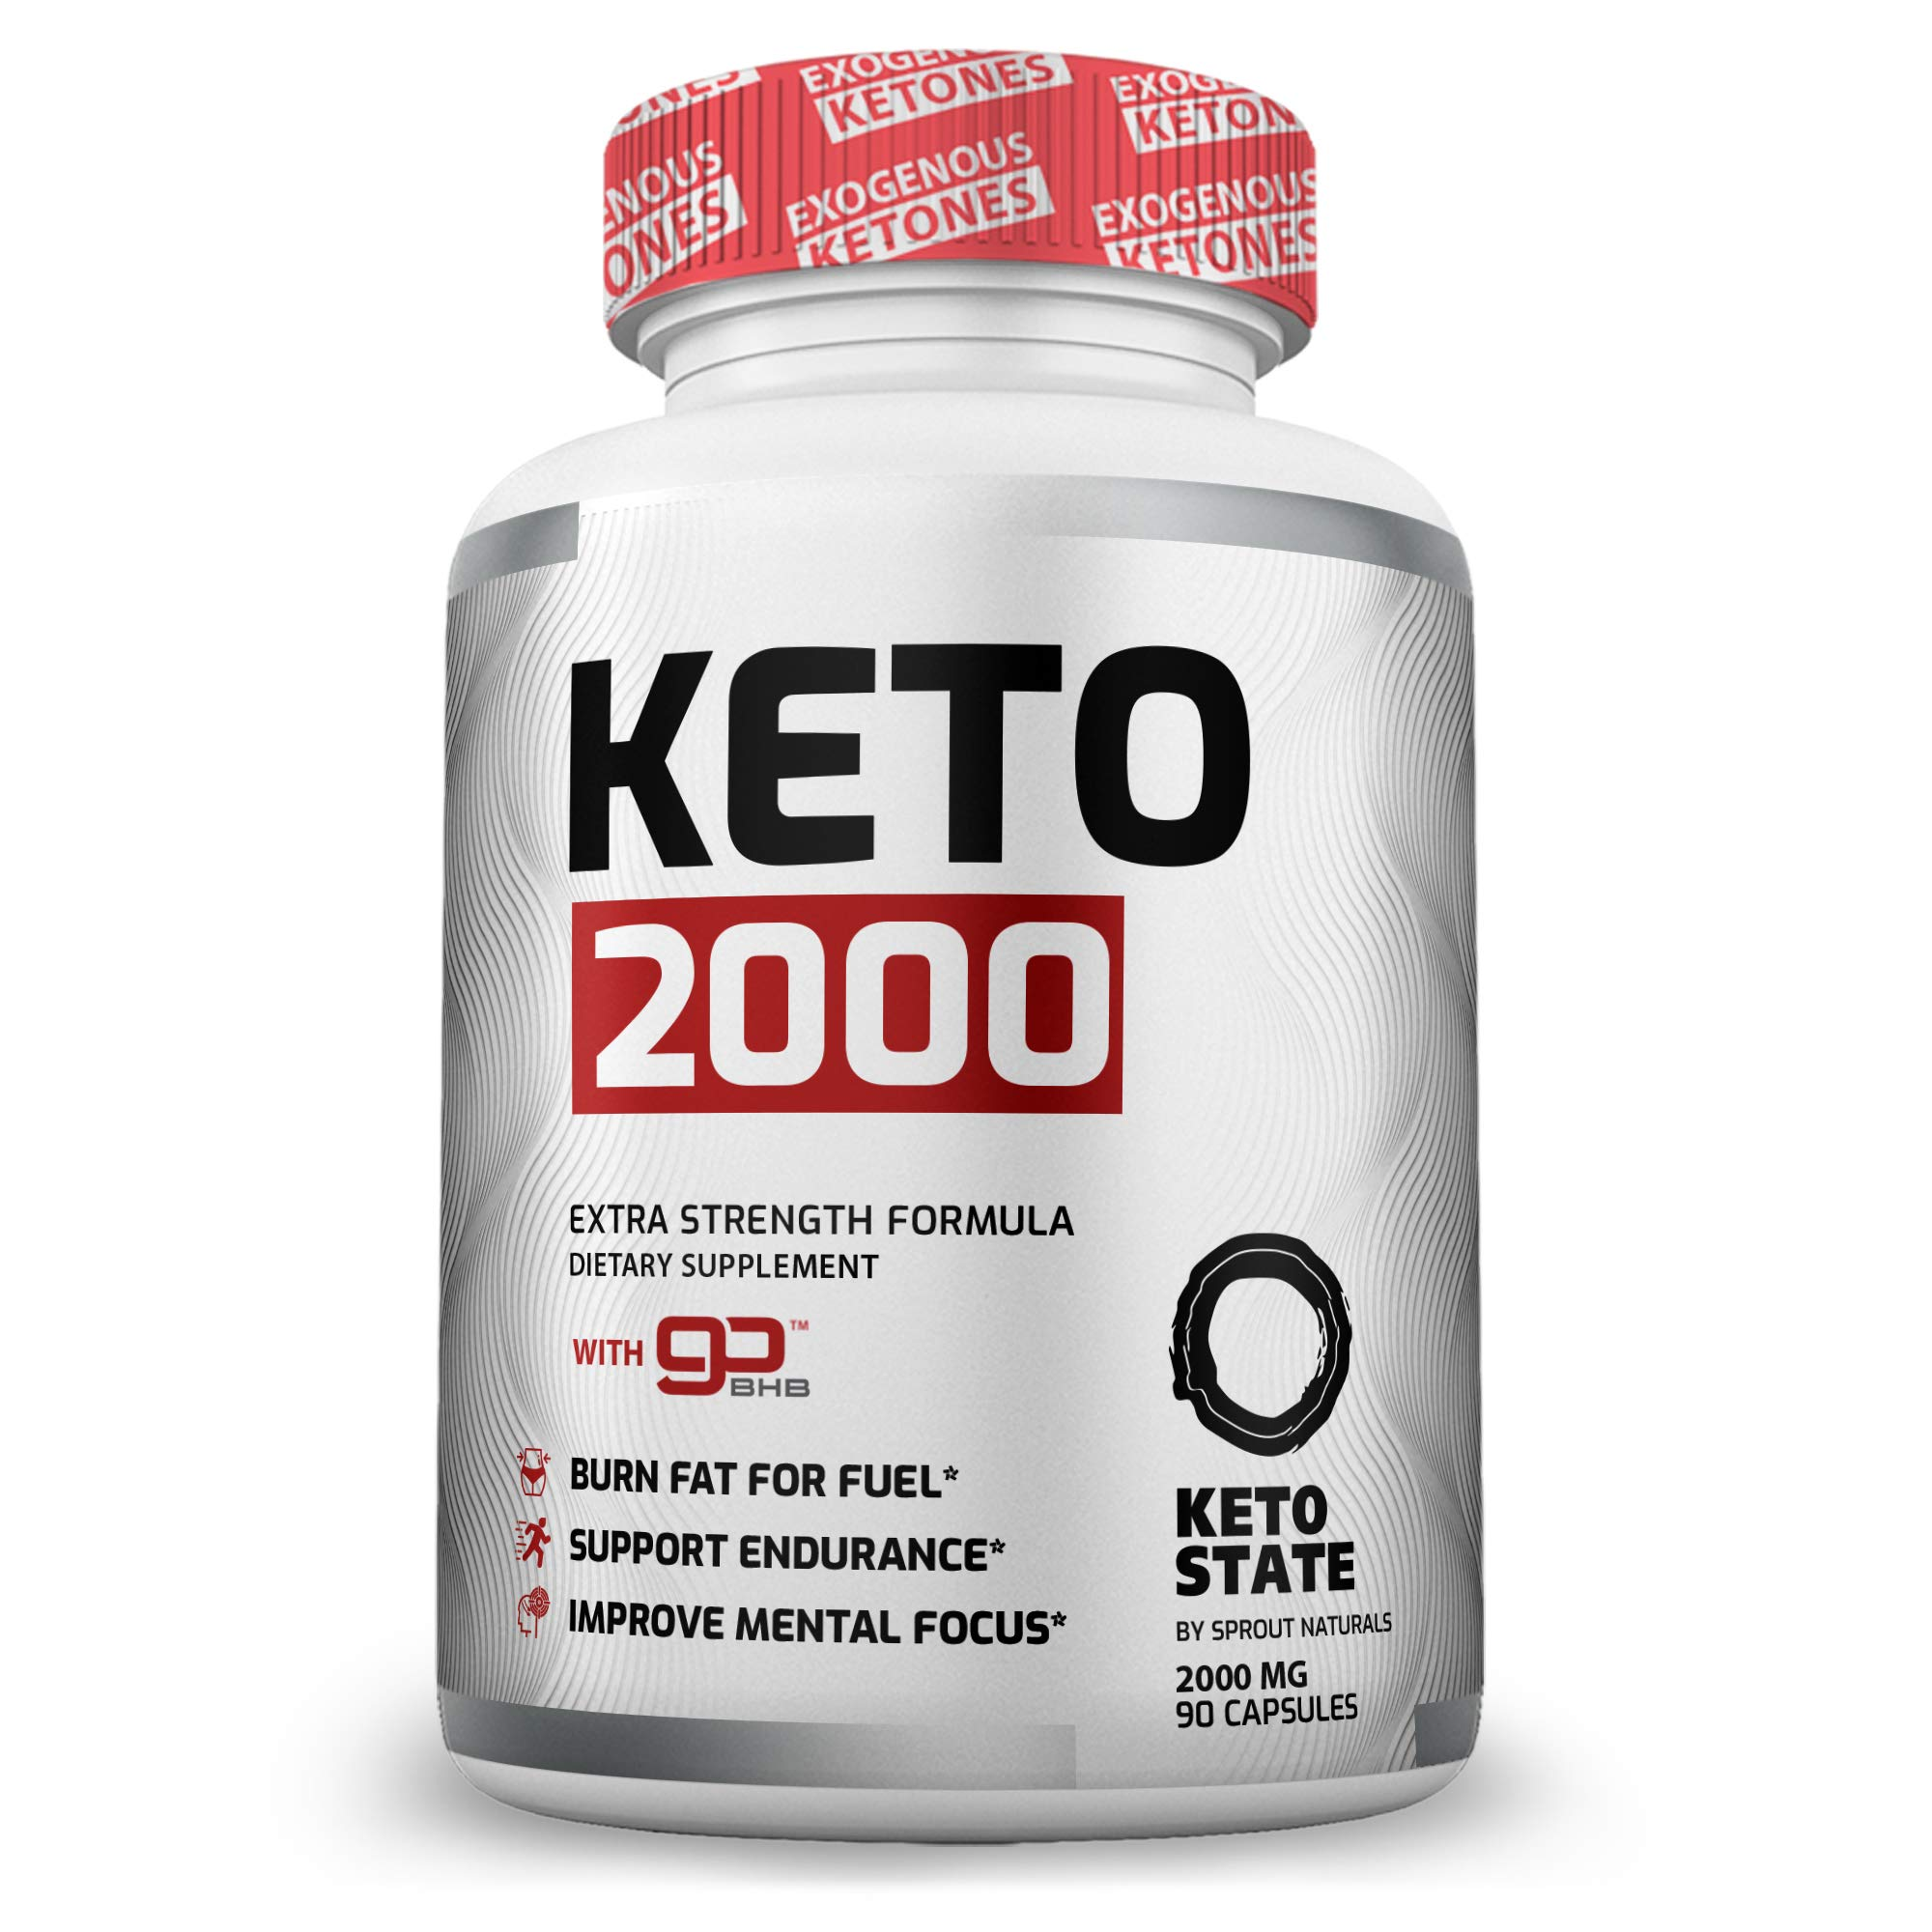 Keto Pills - Advanced Keto Diet Pills(90 ct) with Patented GoBHB Exogenous Ketones - Max Strength Formula by Sprout Naturals